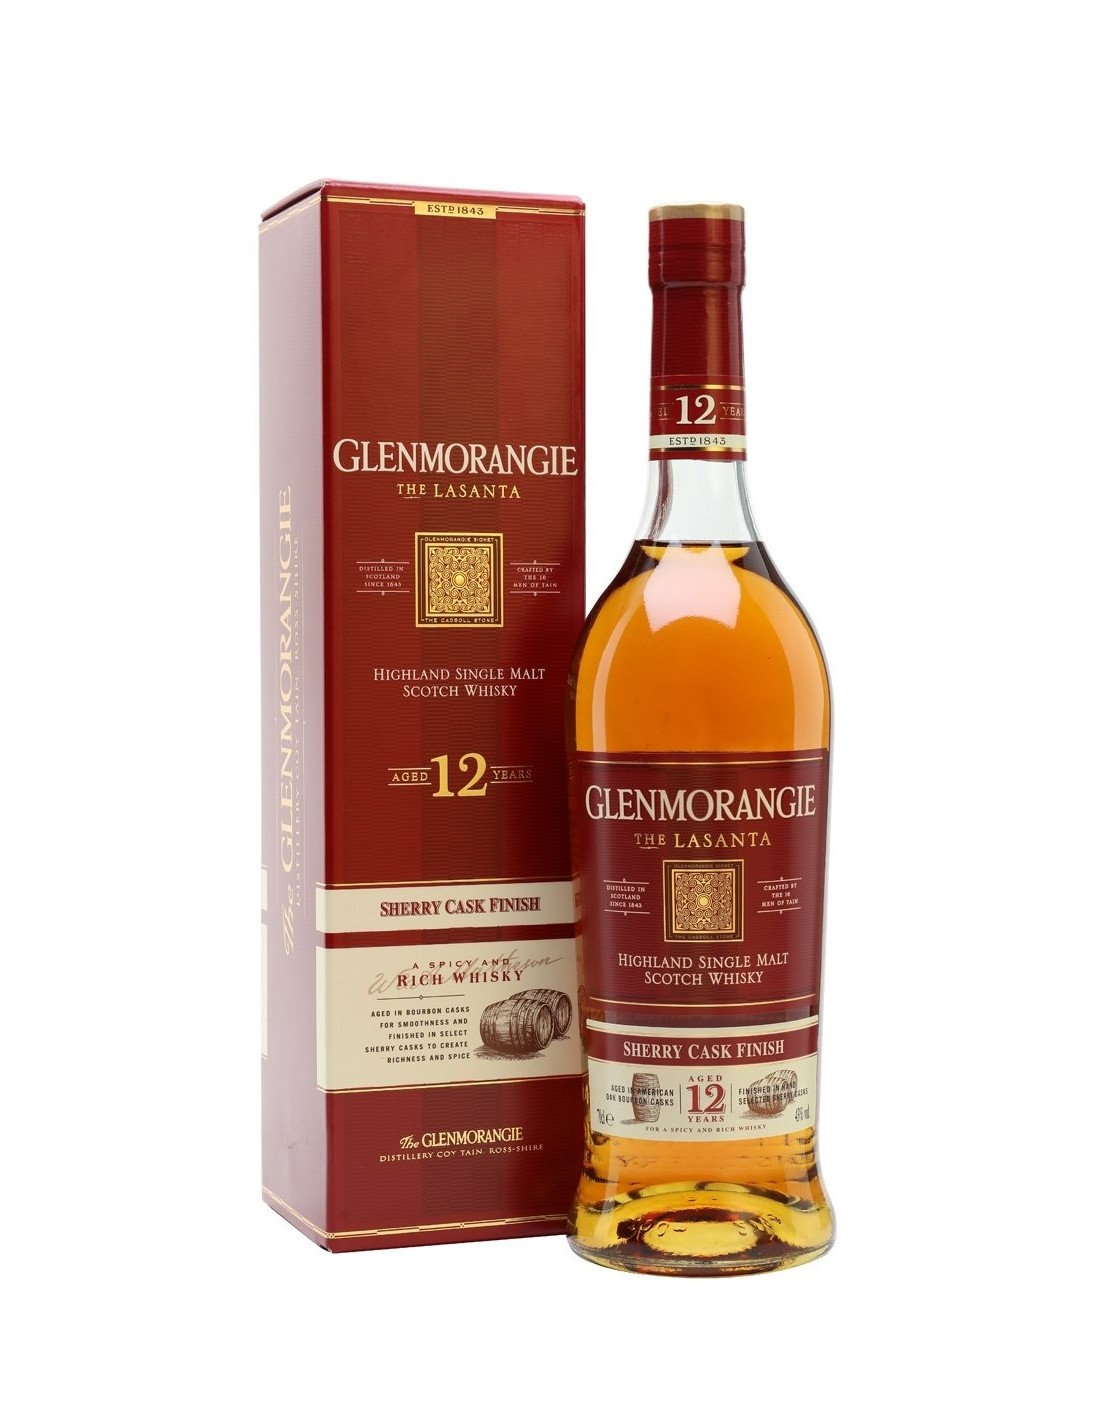 Whisky Single Malt Glenmorangie Lasanta, 12 ani , 43% alc., 0.7L, Scotia